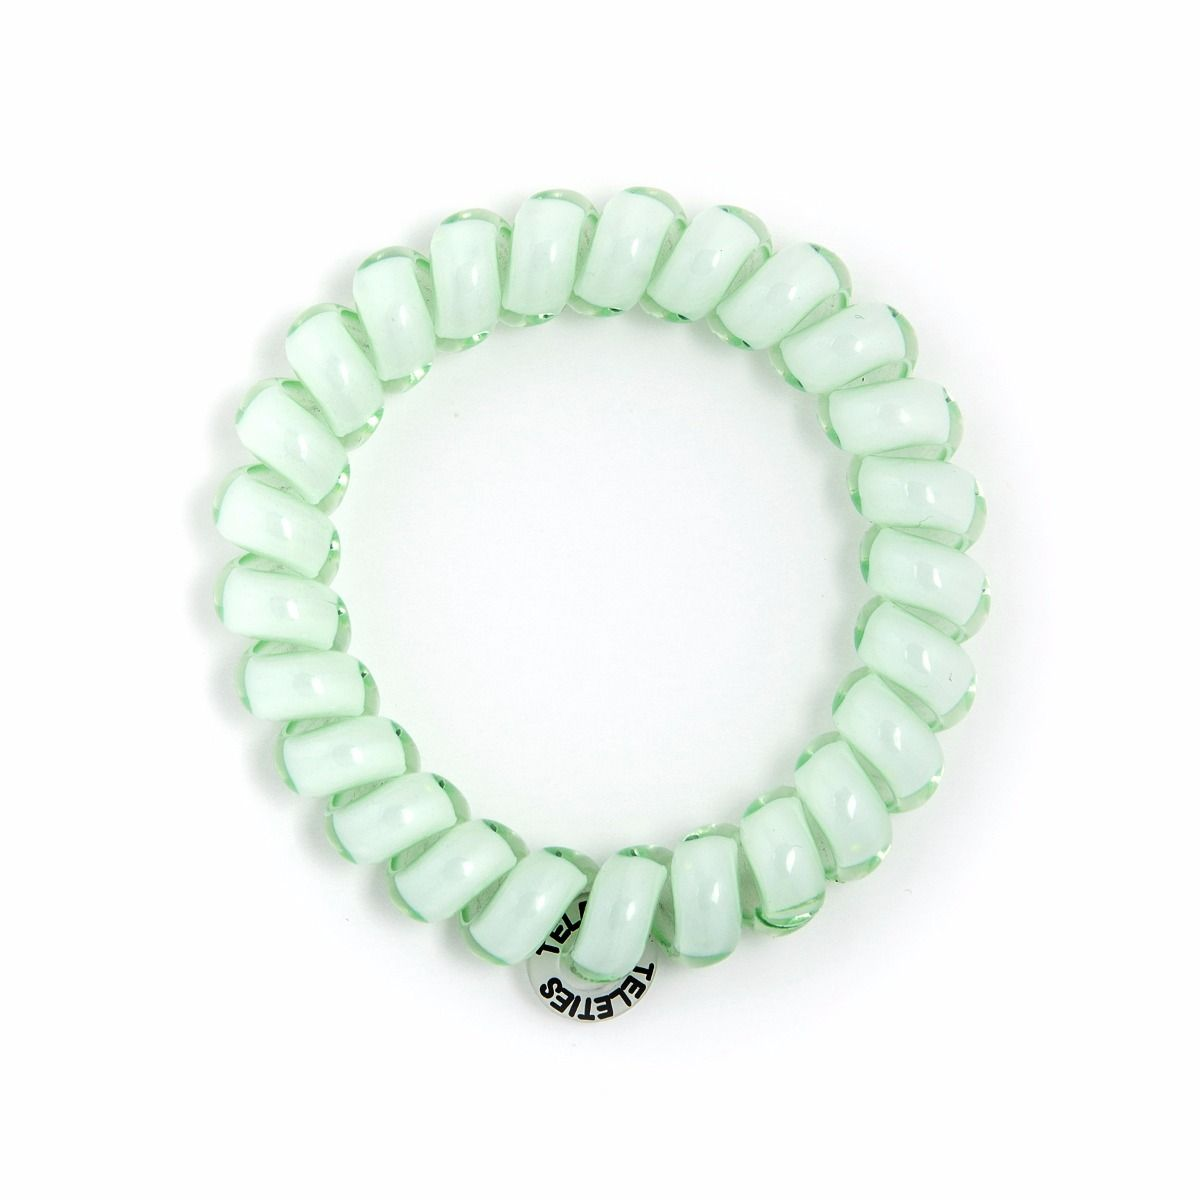 Teleties mint green hair band